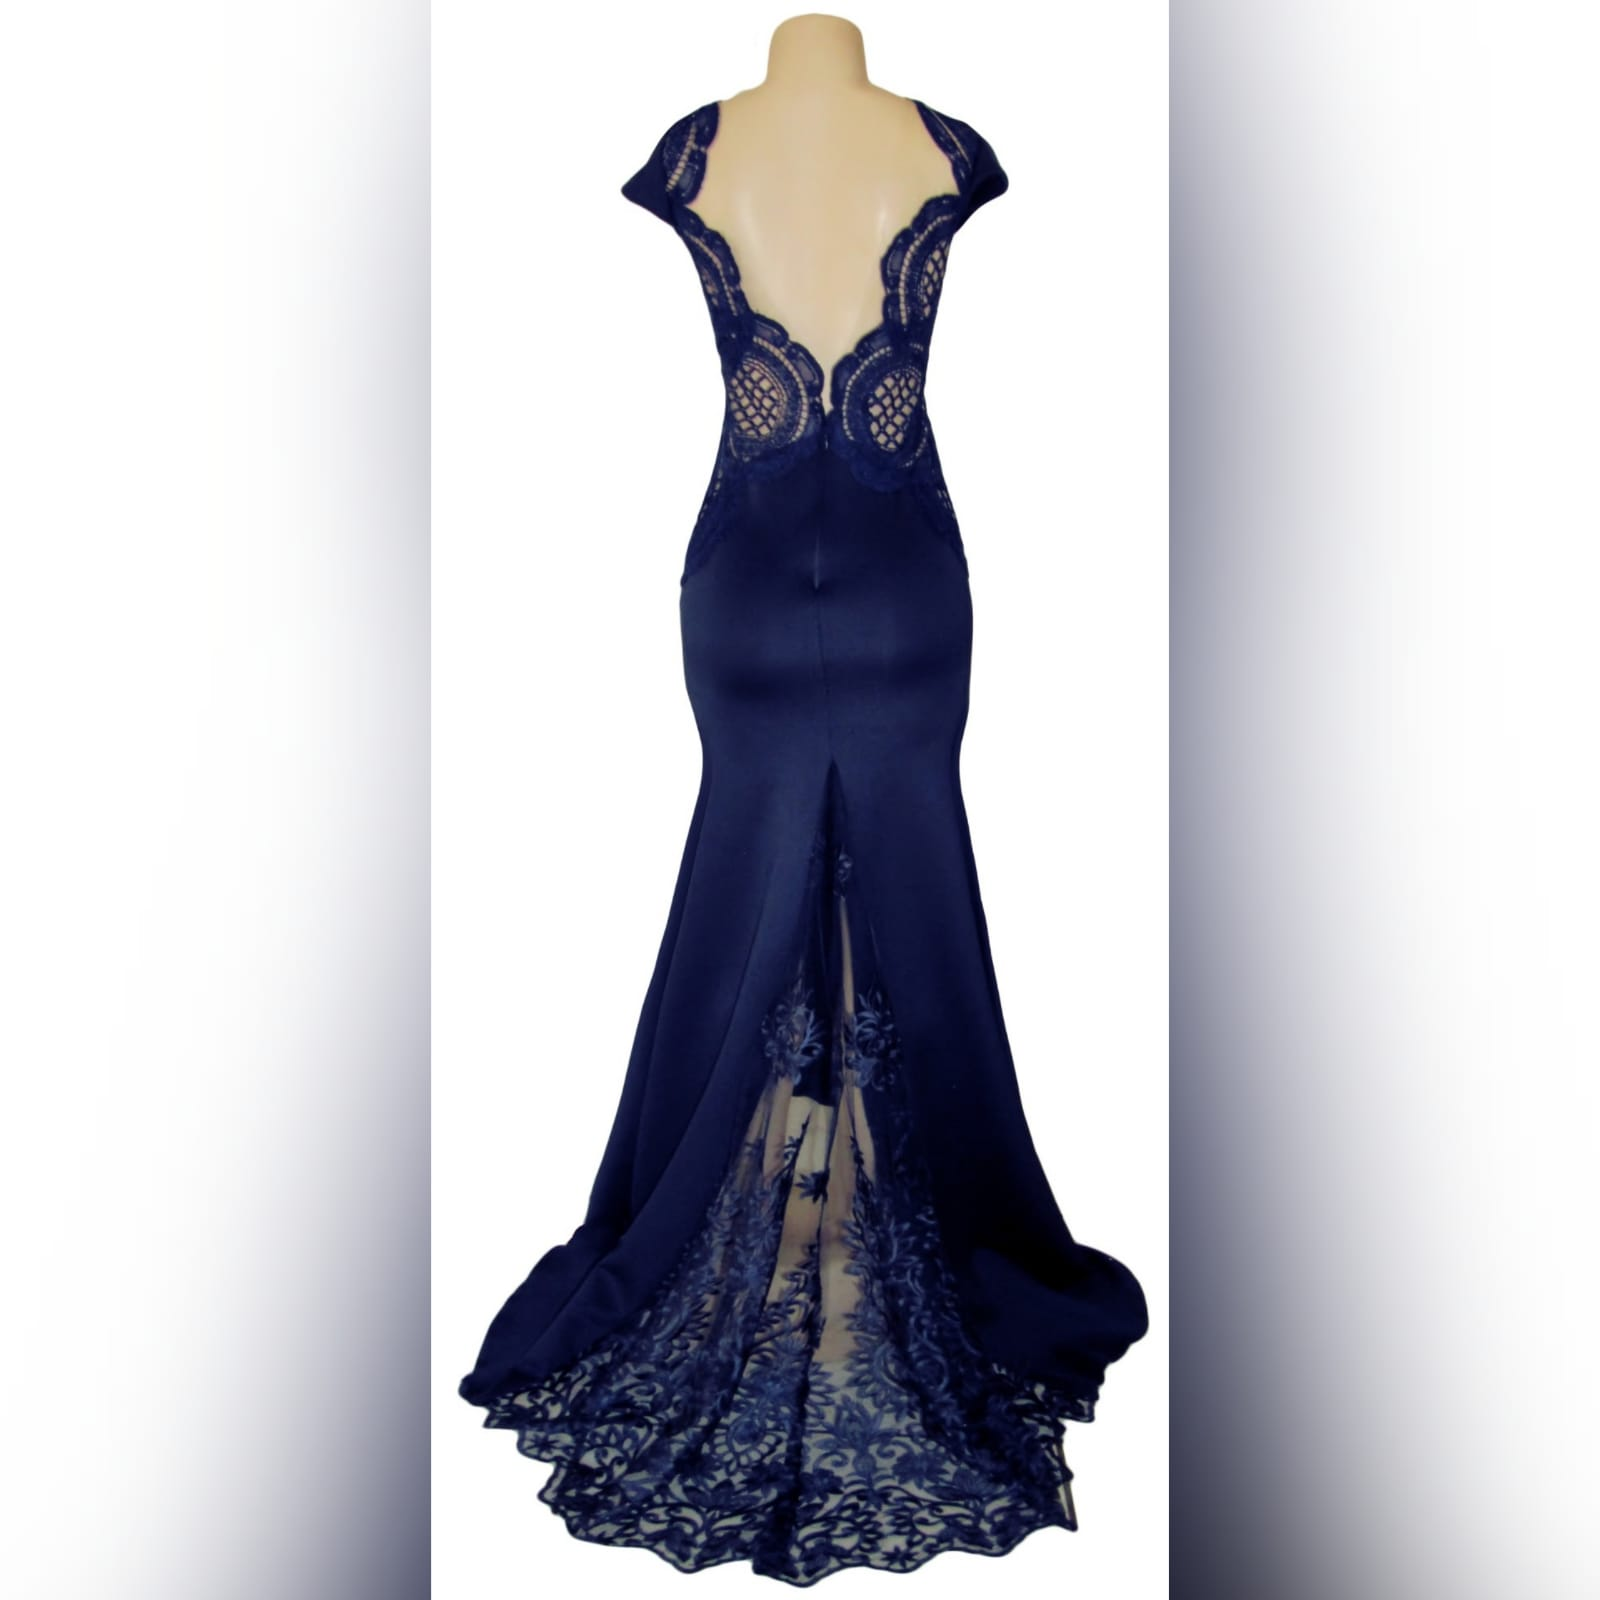 Navy blue long flowy dress with lace bodice 3 navy blue long flowy dress with lace bodice, v neckline & low v open back with a slit.